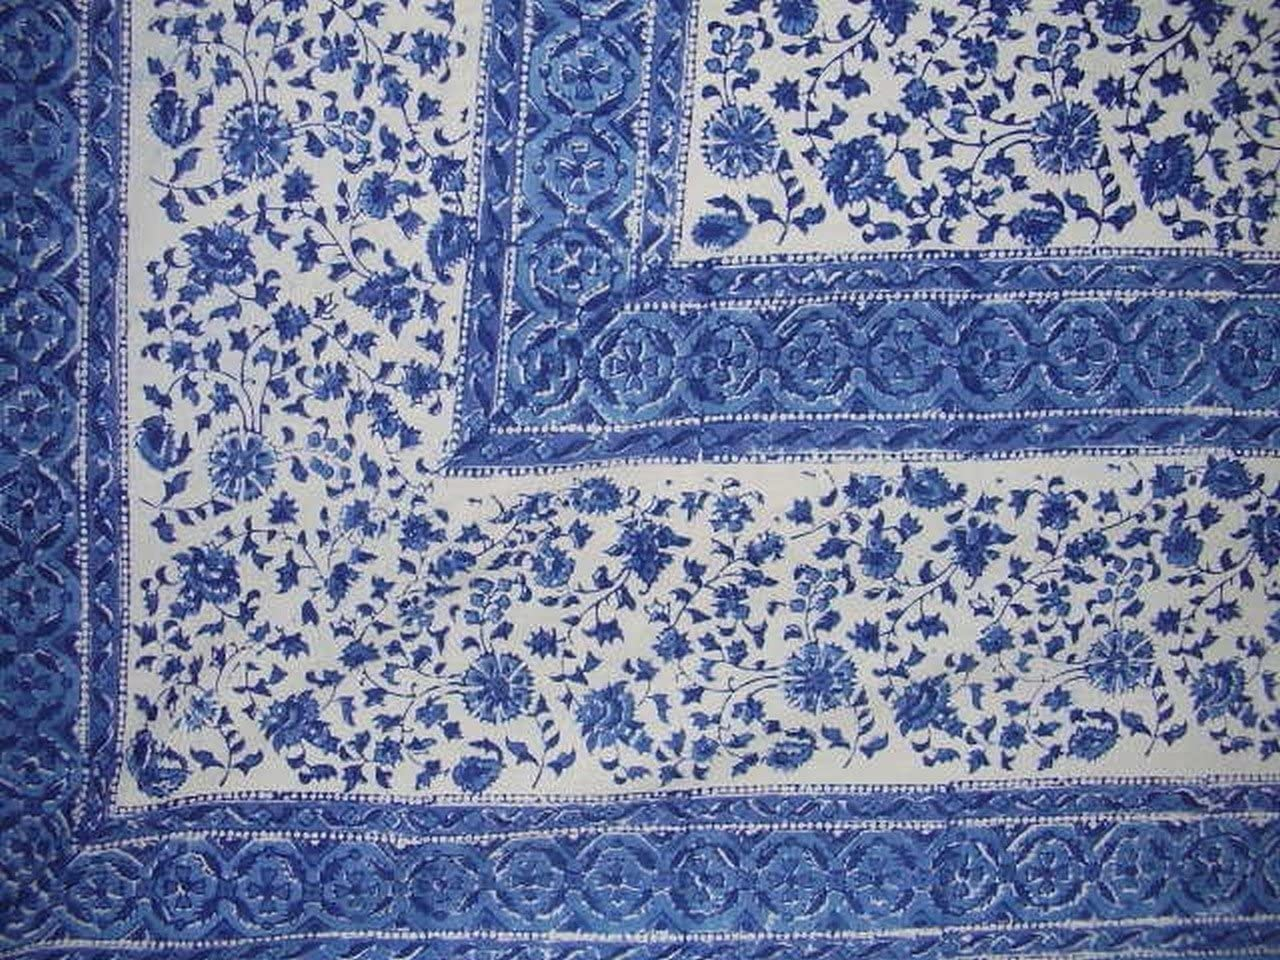 Rajasthan Block Print Tapestry Cotton Spread 106 x 70 Twin Blue